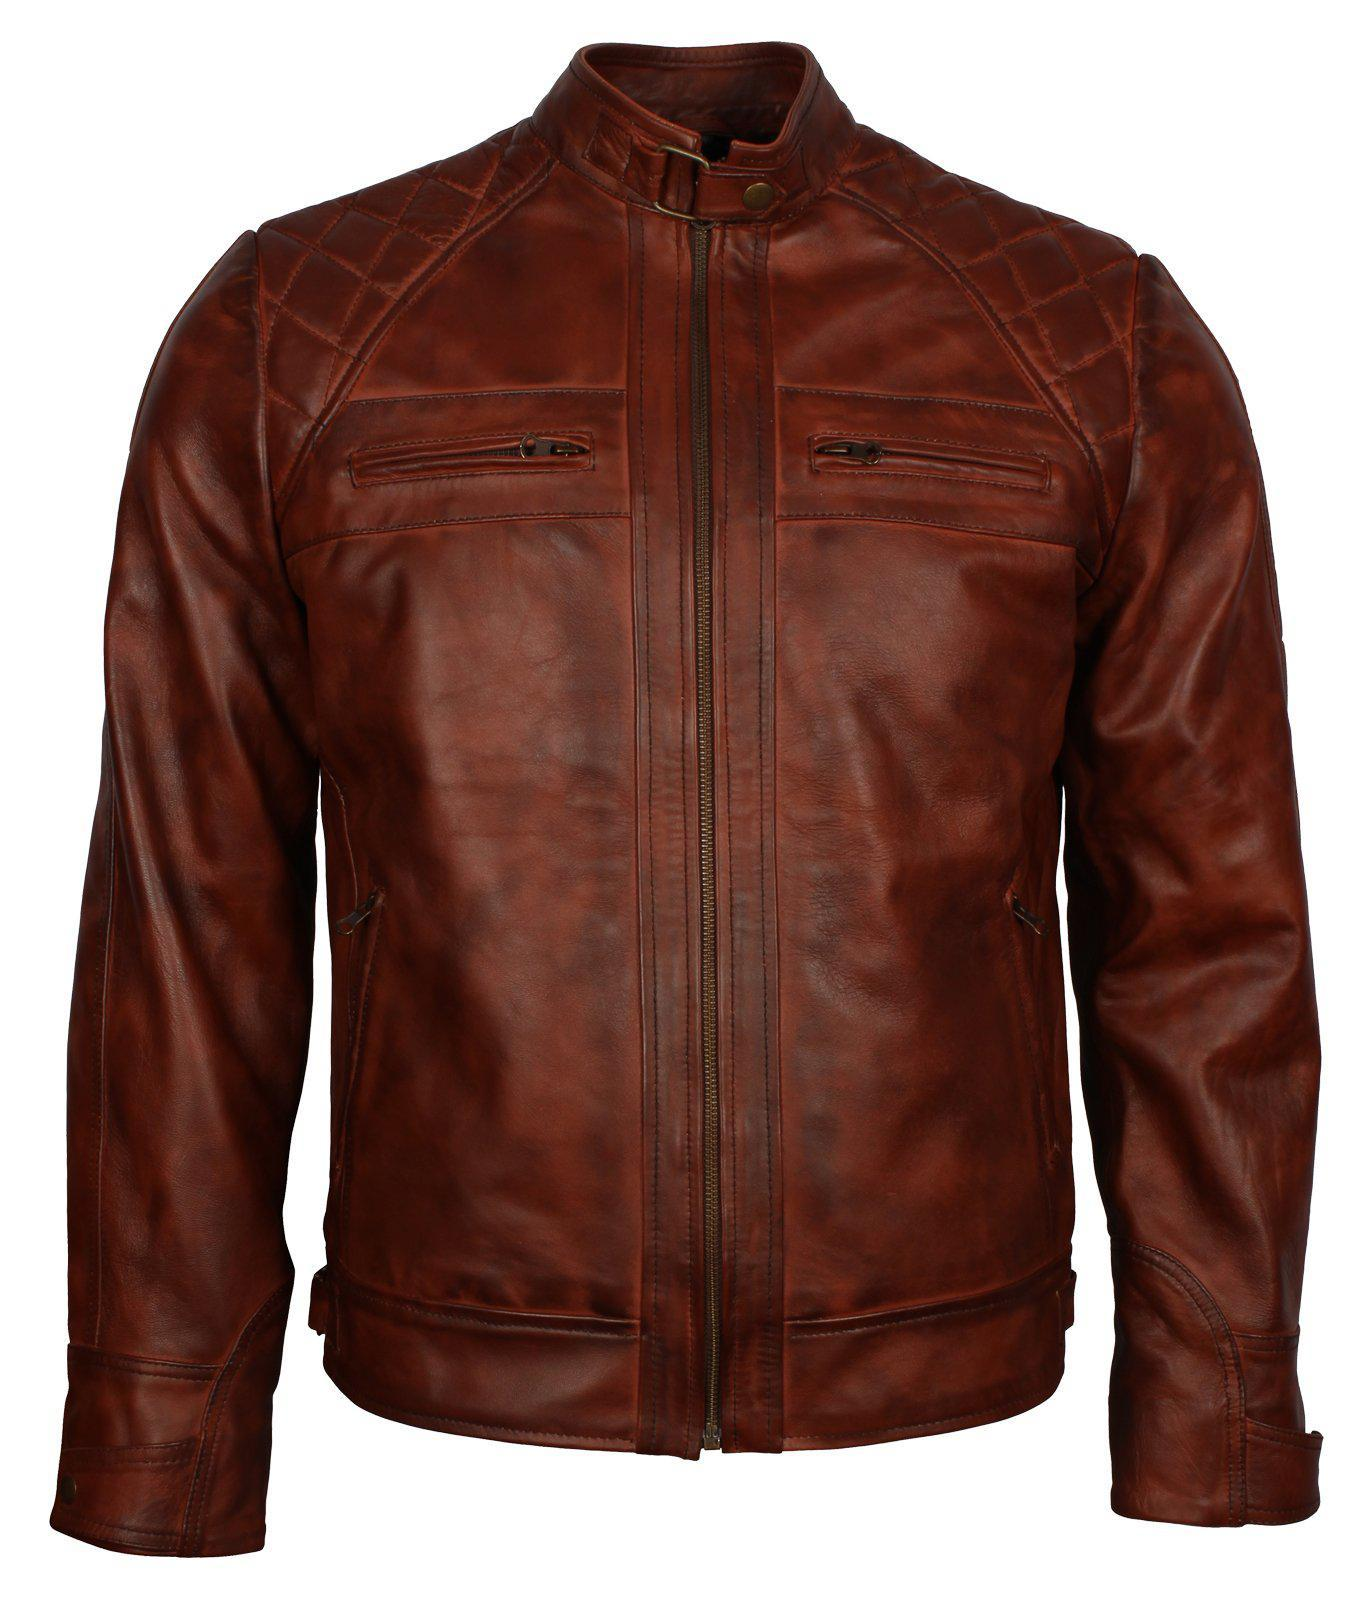 Cafe Racer Men's Brown Leather Jacket Diamond Quilted